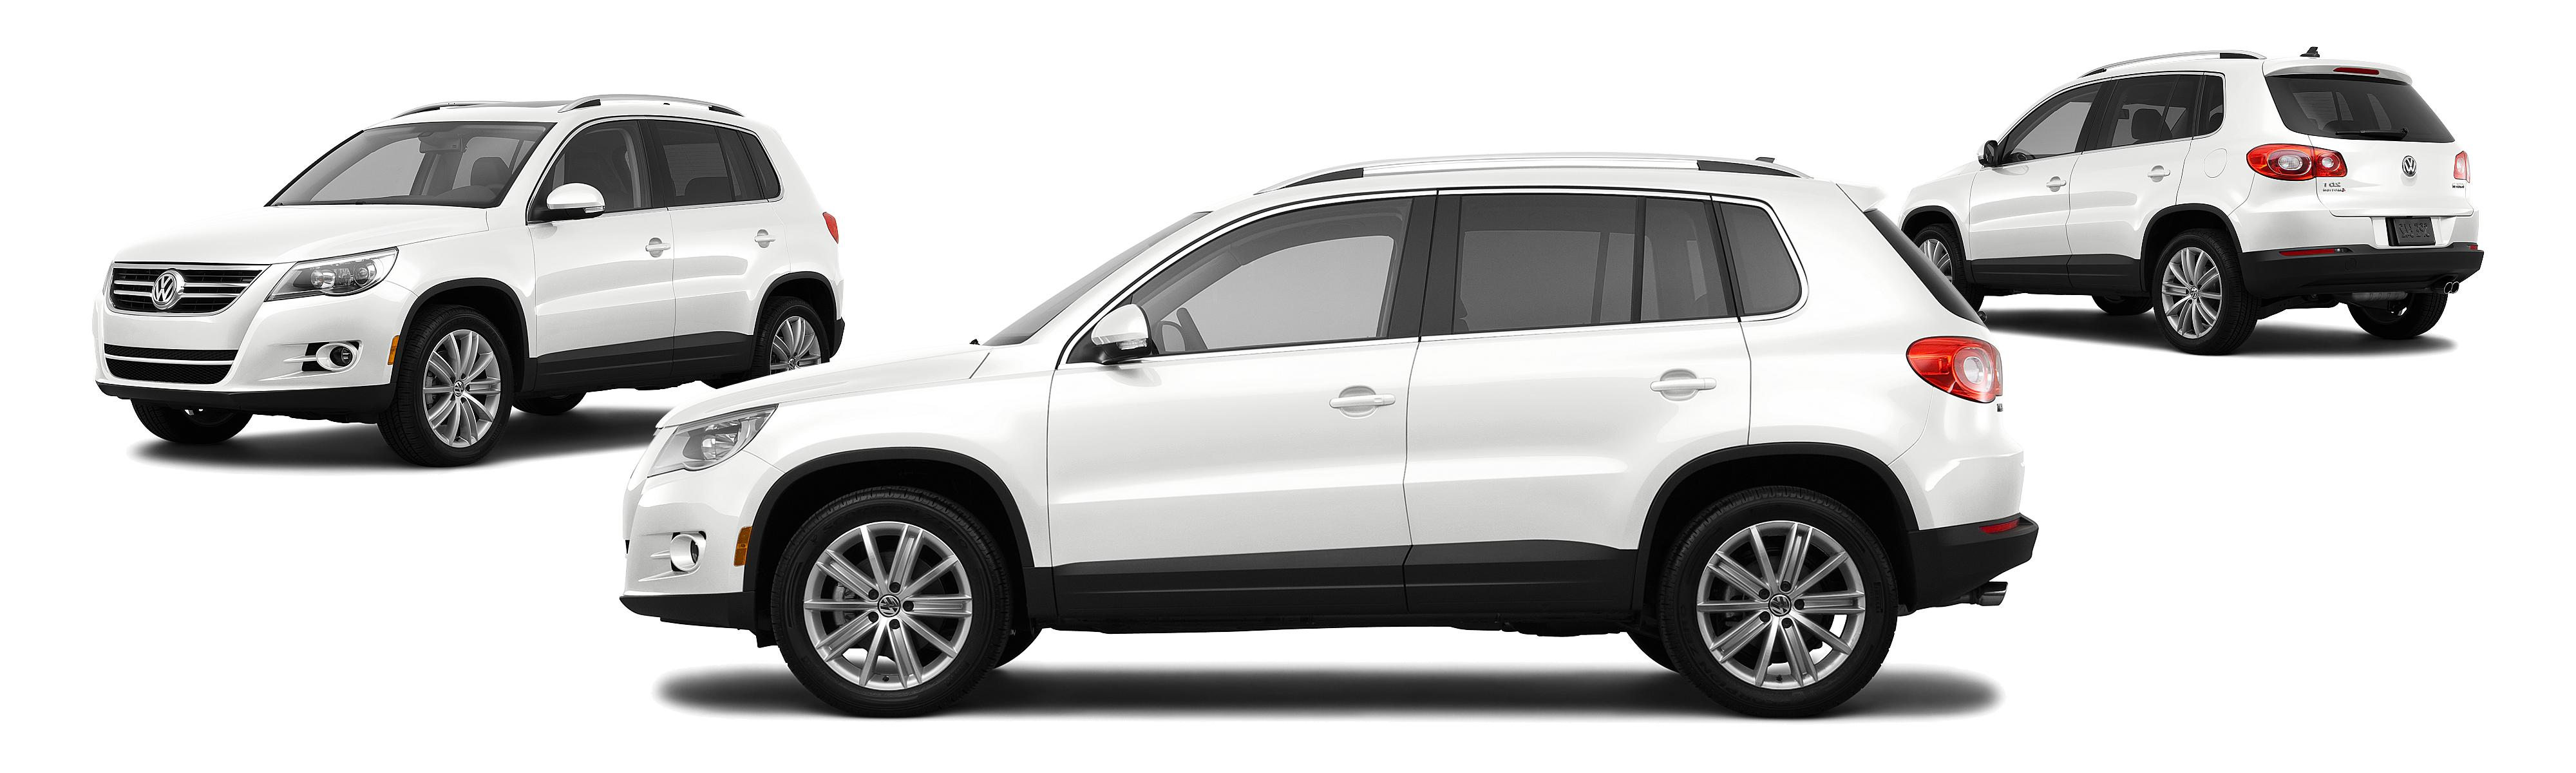 2011 Volkswagen Tiguan Sel 4motion 4dr Suv W Premium Navigation And Fuse Box Dynaudio Research Groovecar